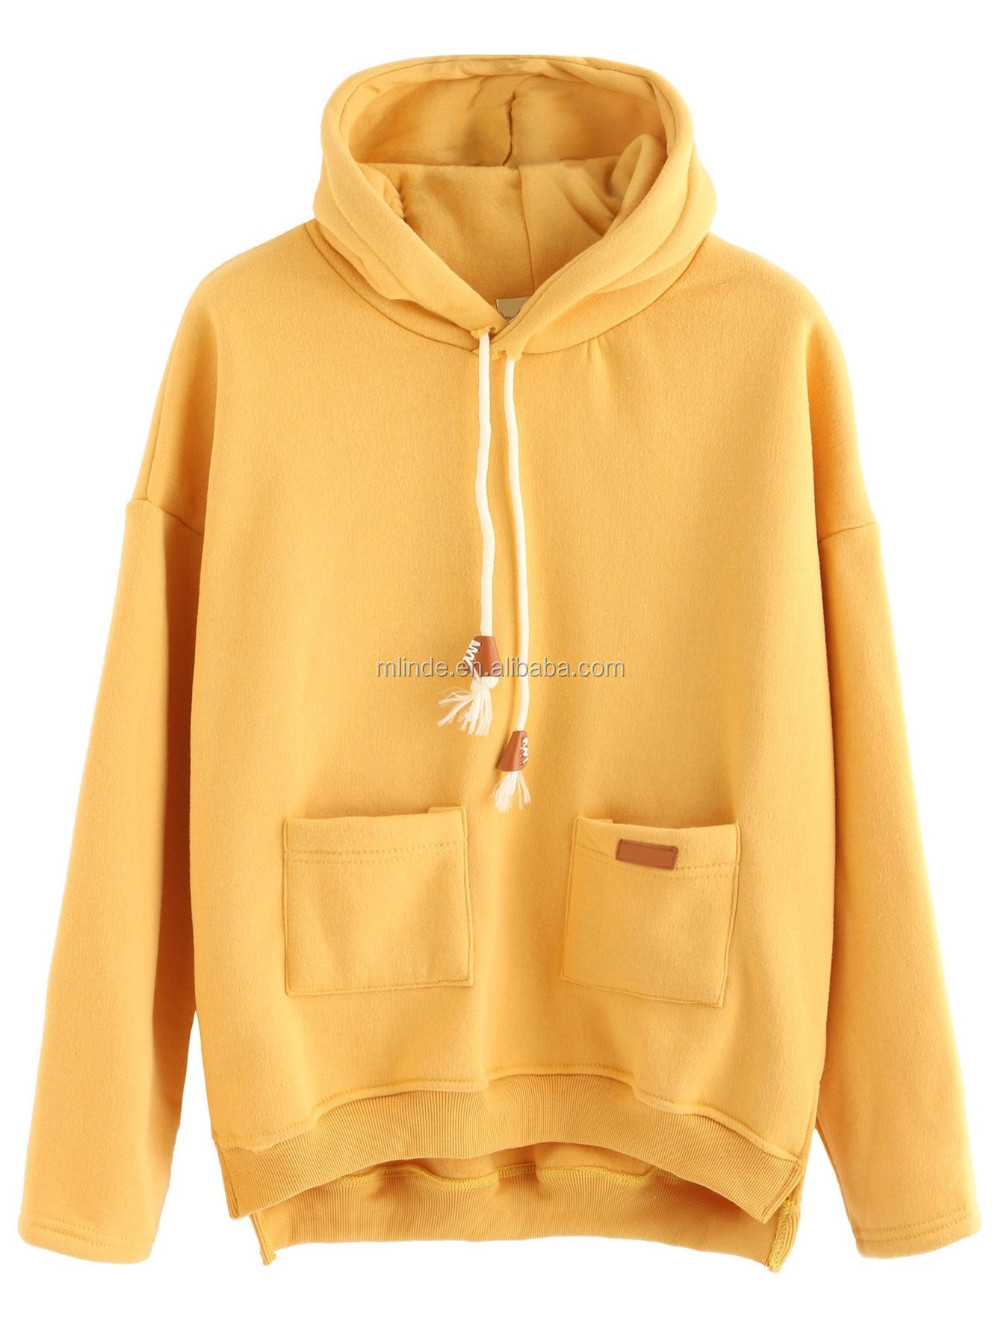 Design Your Own Hoodie Yellow Slit Side High Low Hooded Sweatshirt Custom  Made Sublimation Print Hoodie Women 4d65bf422